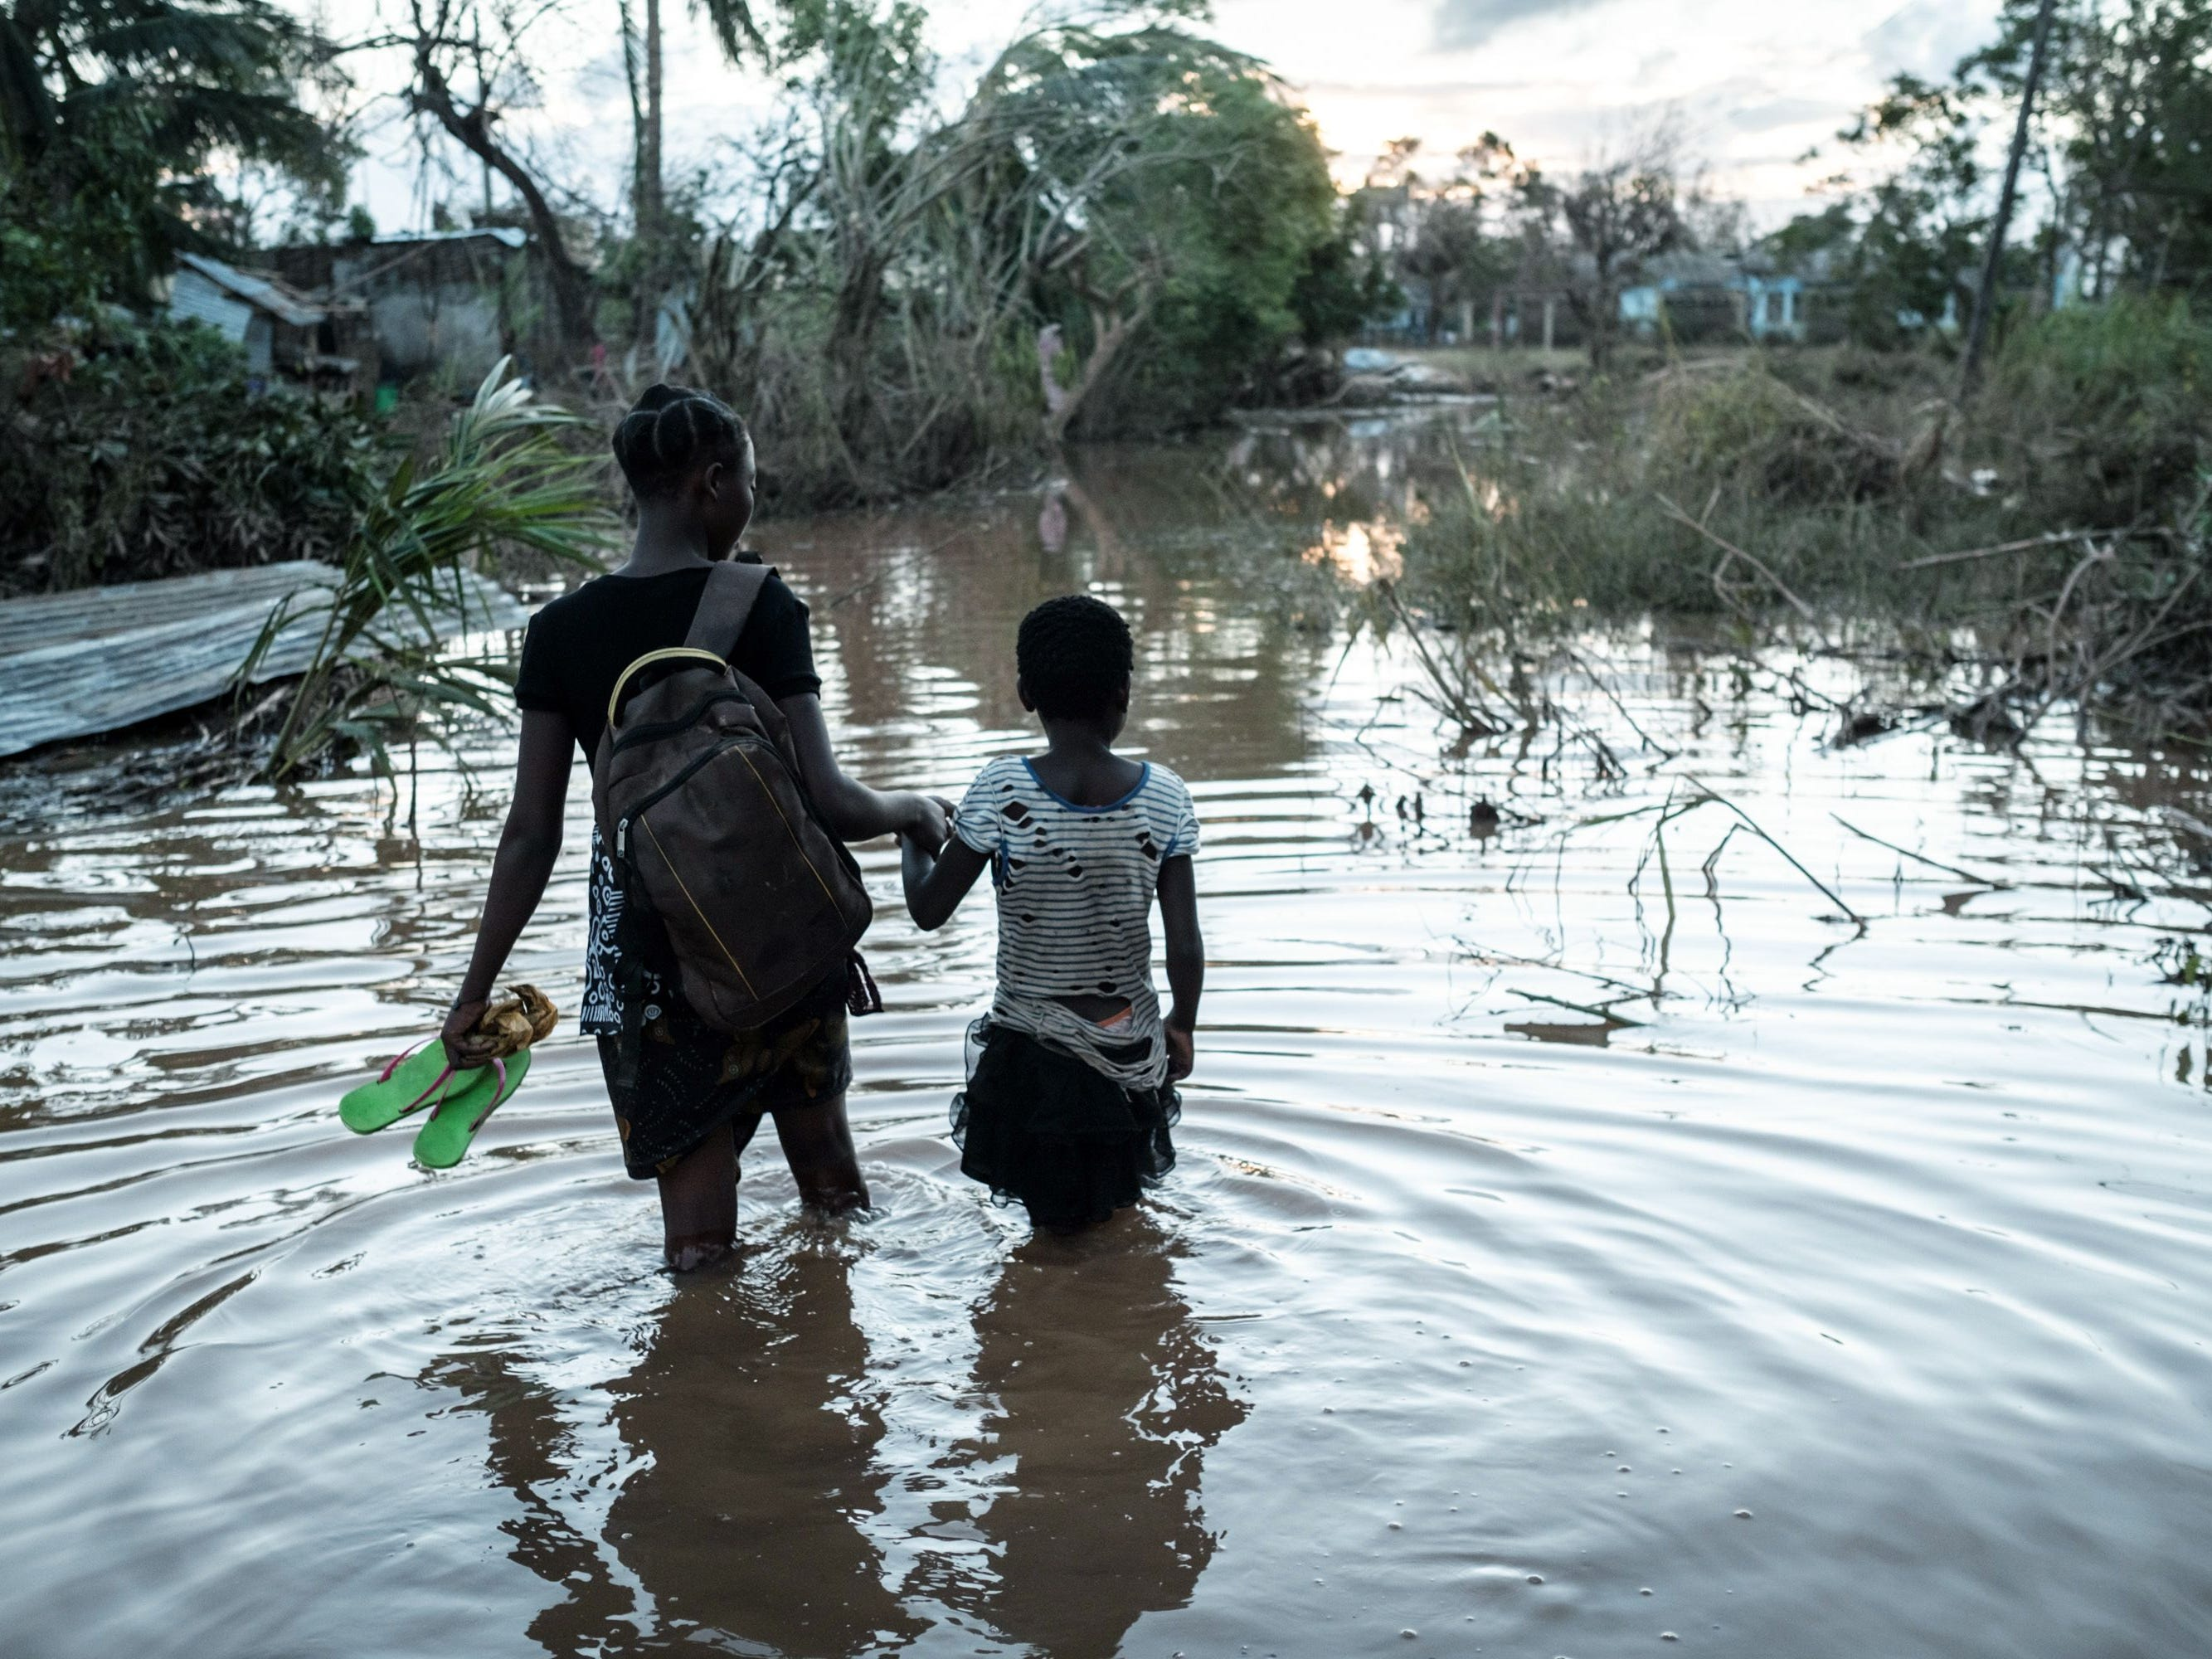 Rosita Moises Zacarias, left, 15, holding the hand of her sister Joaninha Manuel, 9, walks in flooded waters from their house destroyed by the cyclone Idai, to go to seep in a shelter in Buzi, Mozambique, on March 22, 2019.